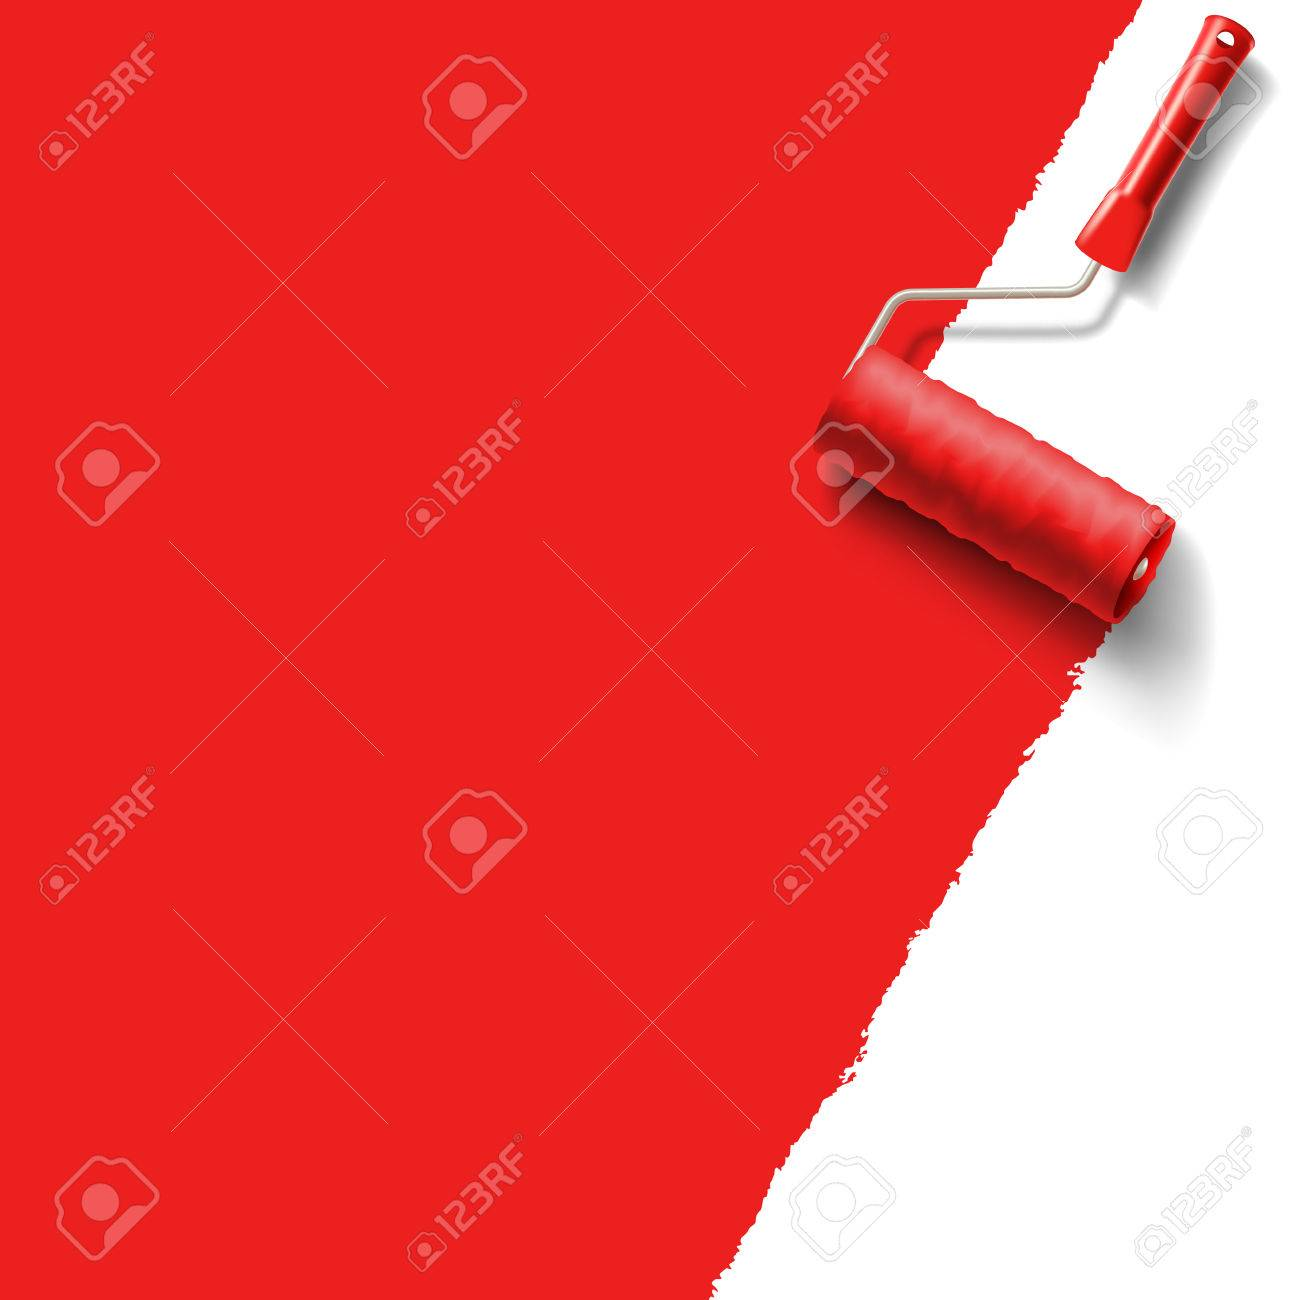 roller brush with red paint - 29687214